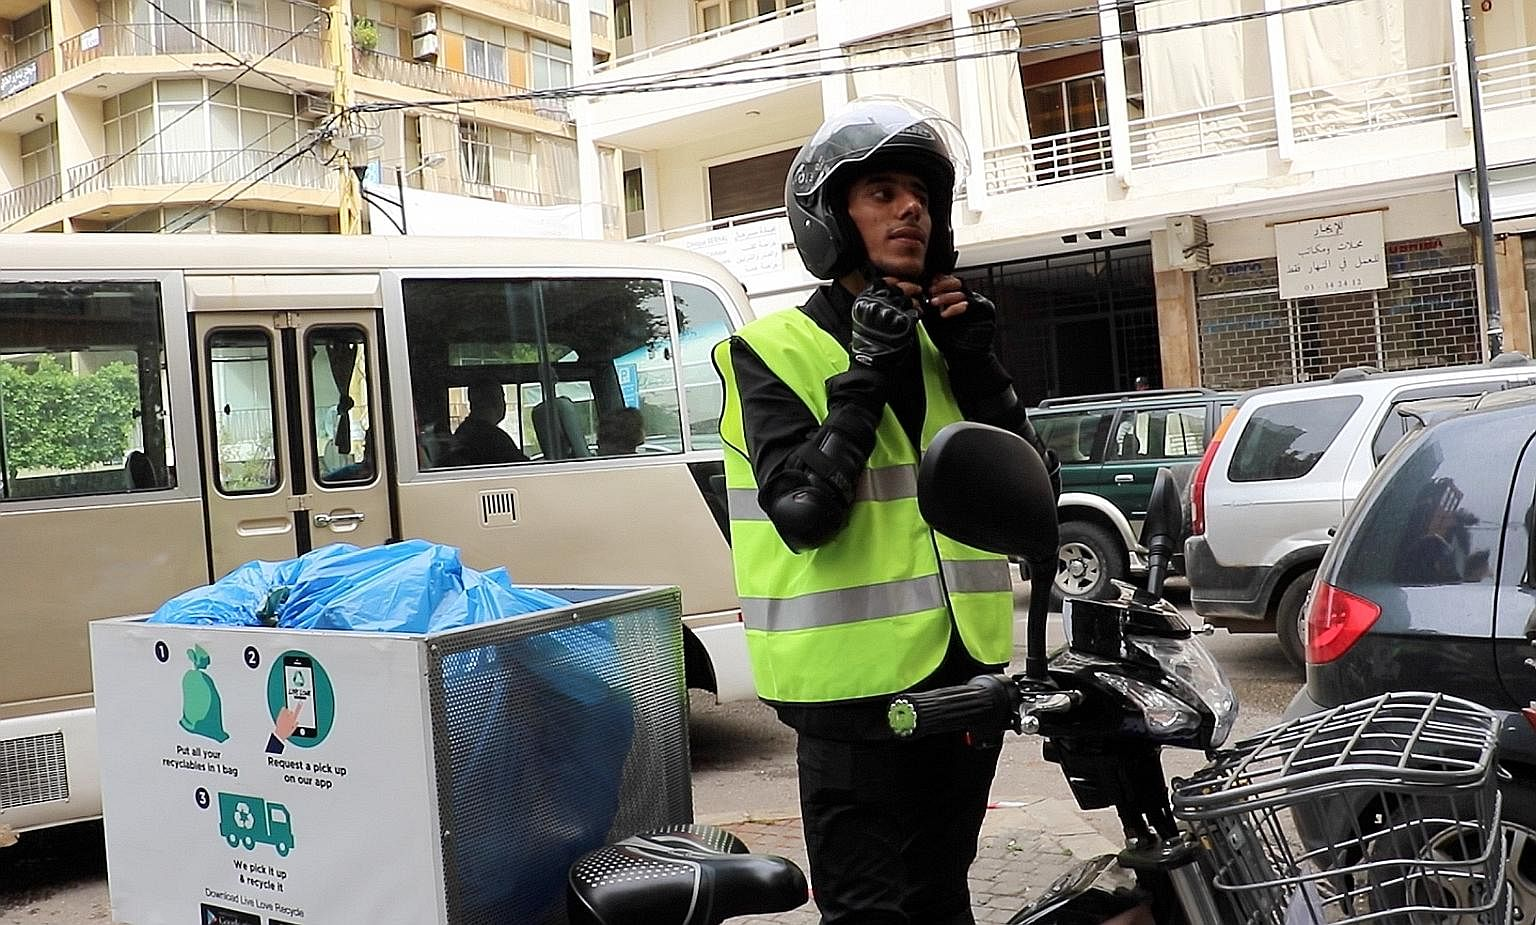 Syrian refugee Ibrahim Habach is one of 400 Live Love Recycle's e-bike couriers who collect recyclable waste in Beirut.